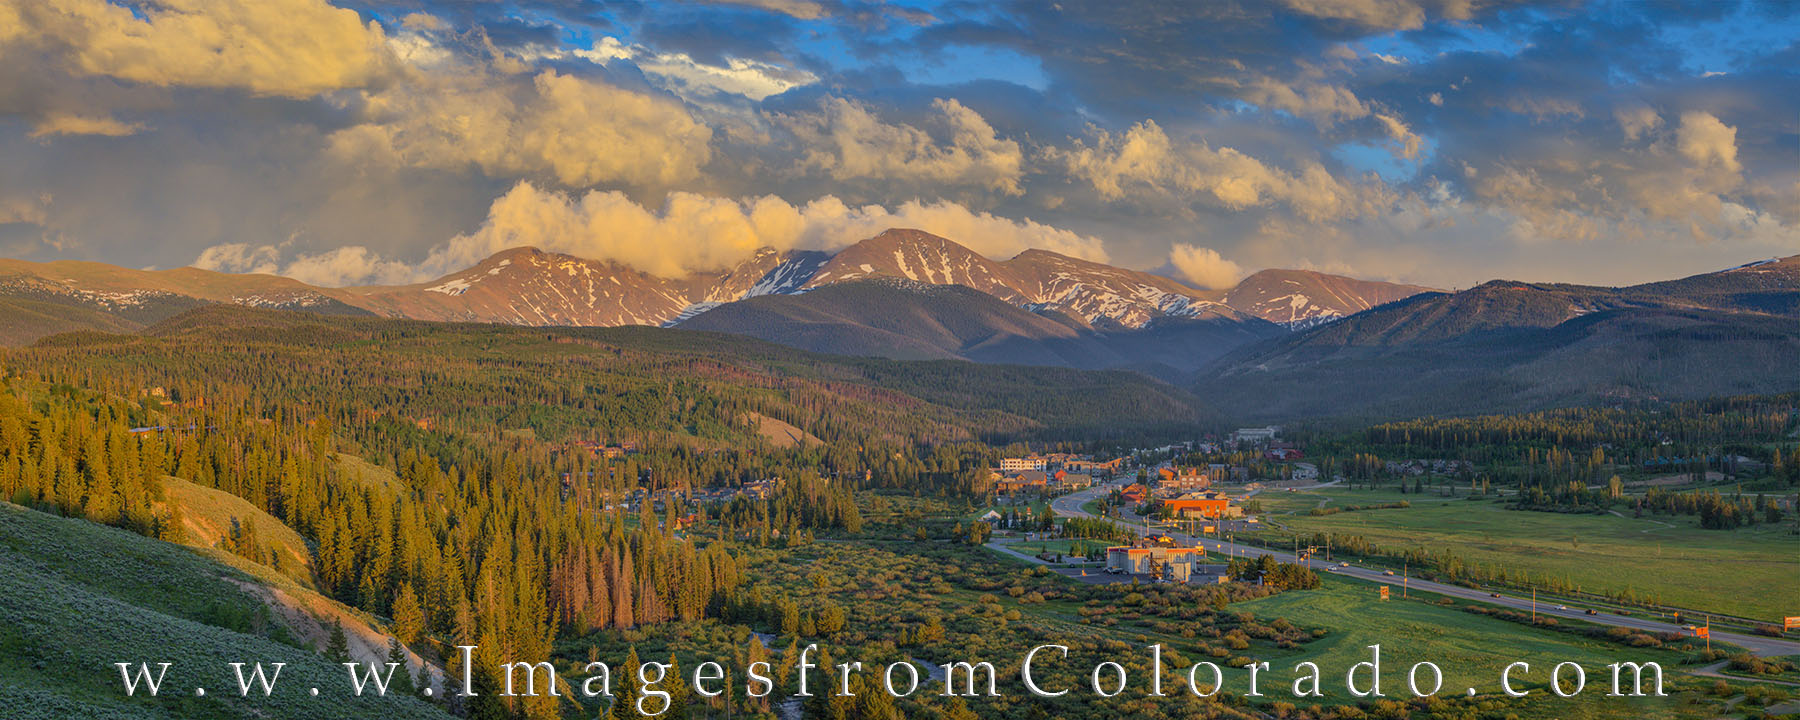 This panorama shows the area around Winter Park, Colorado, on a cool summer evening. Highway 40 heads north through the resort...